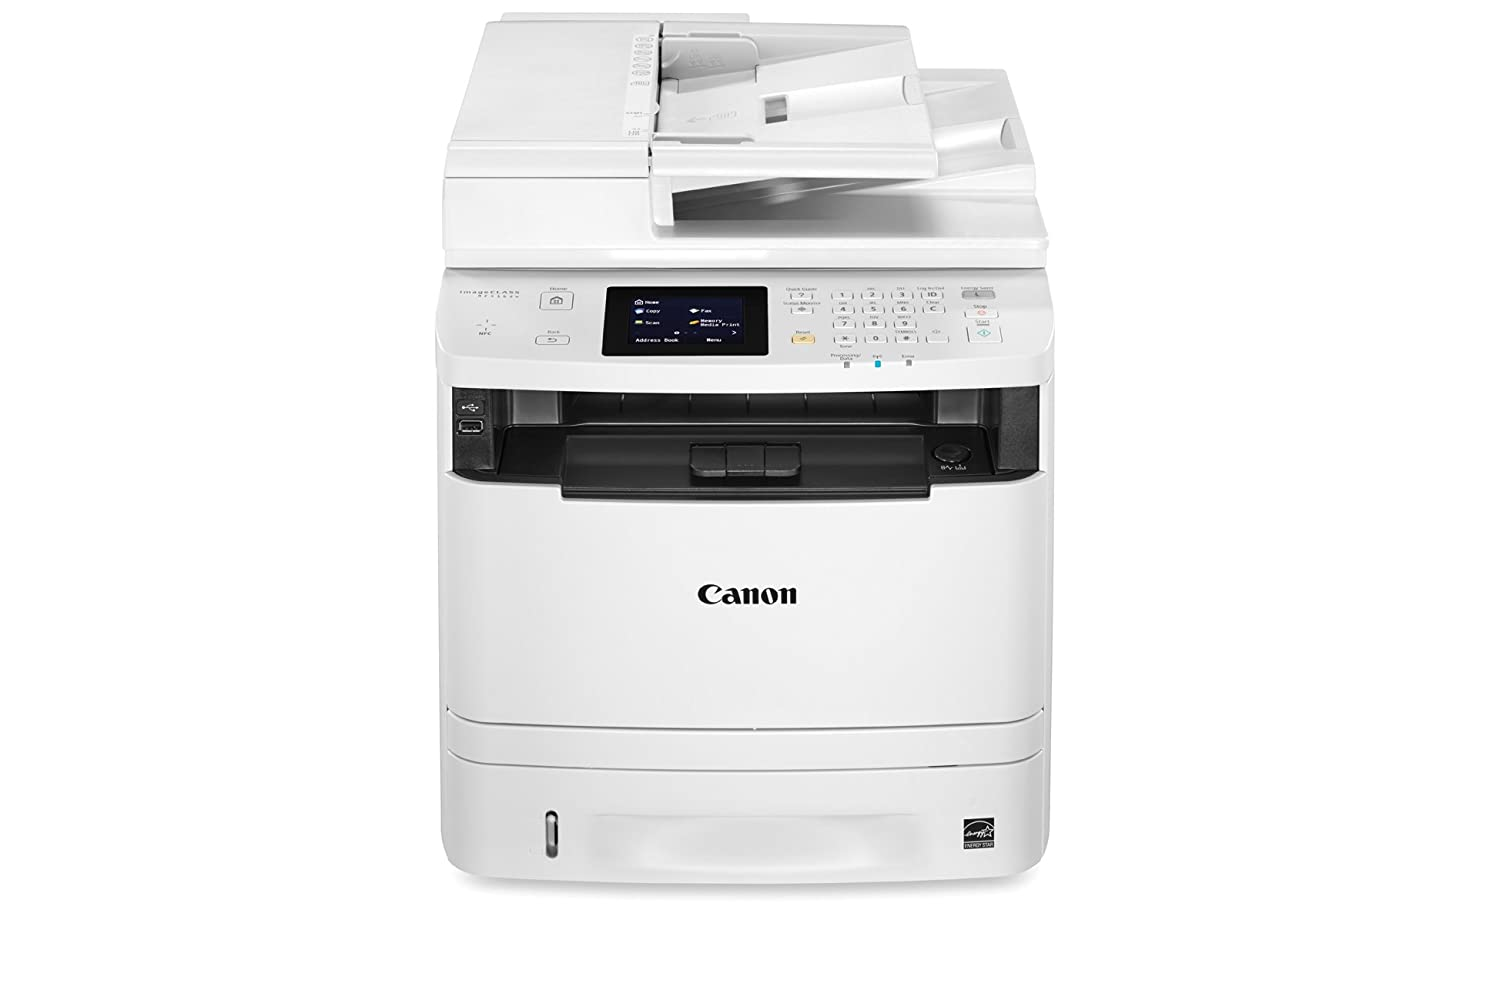 11 Best All-in-One Printers (AIO) for Home & Office in 2019 +